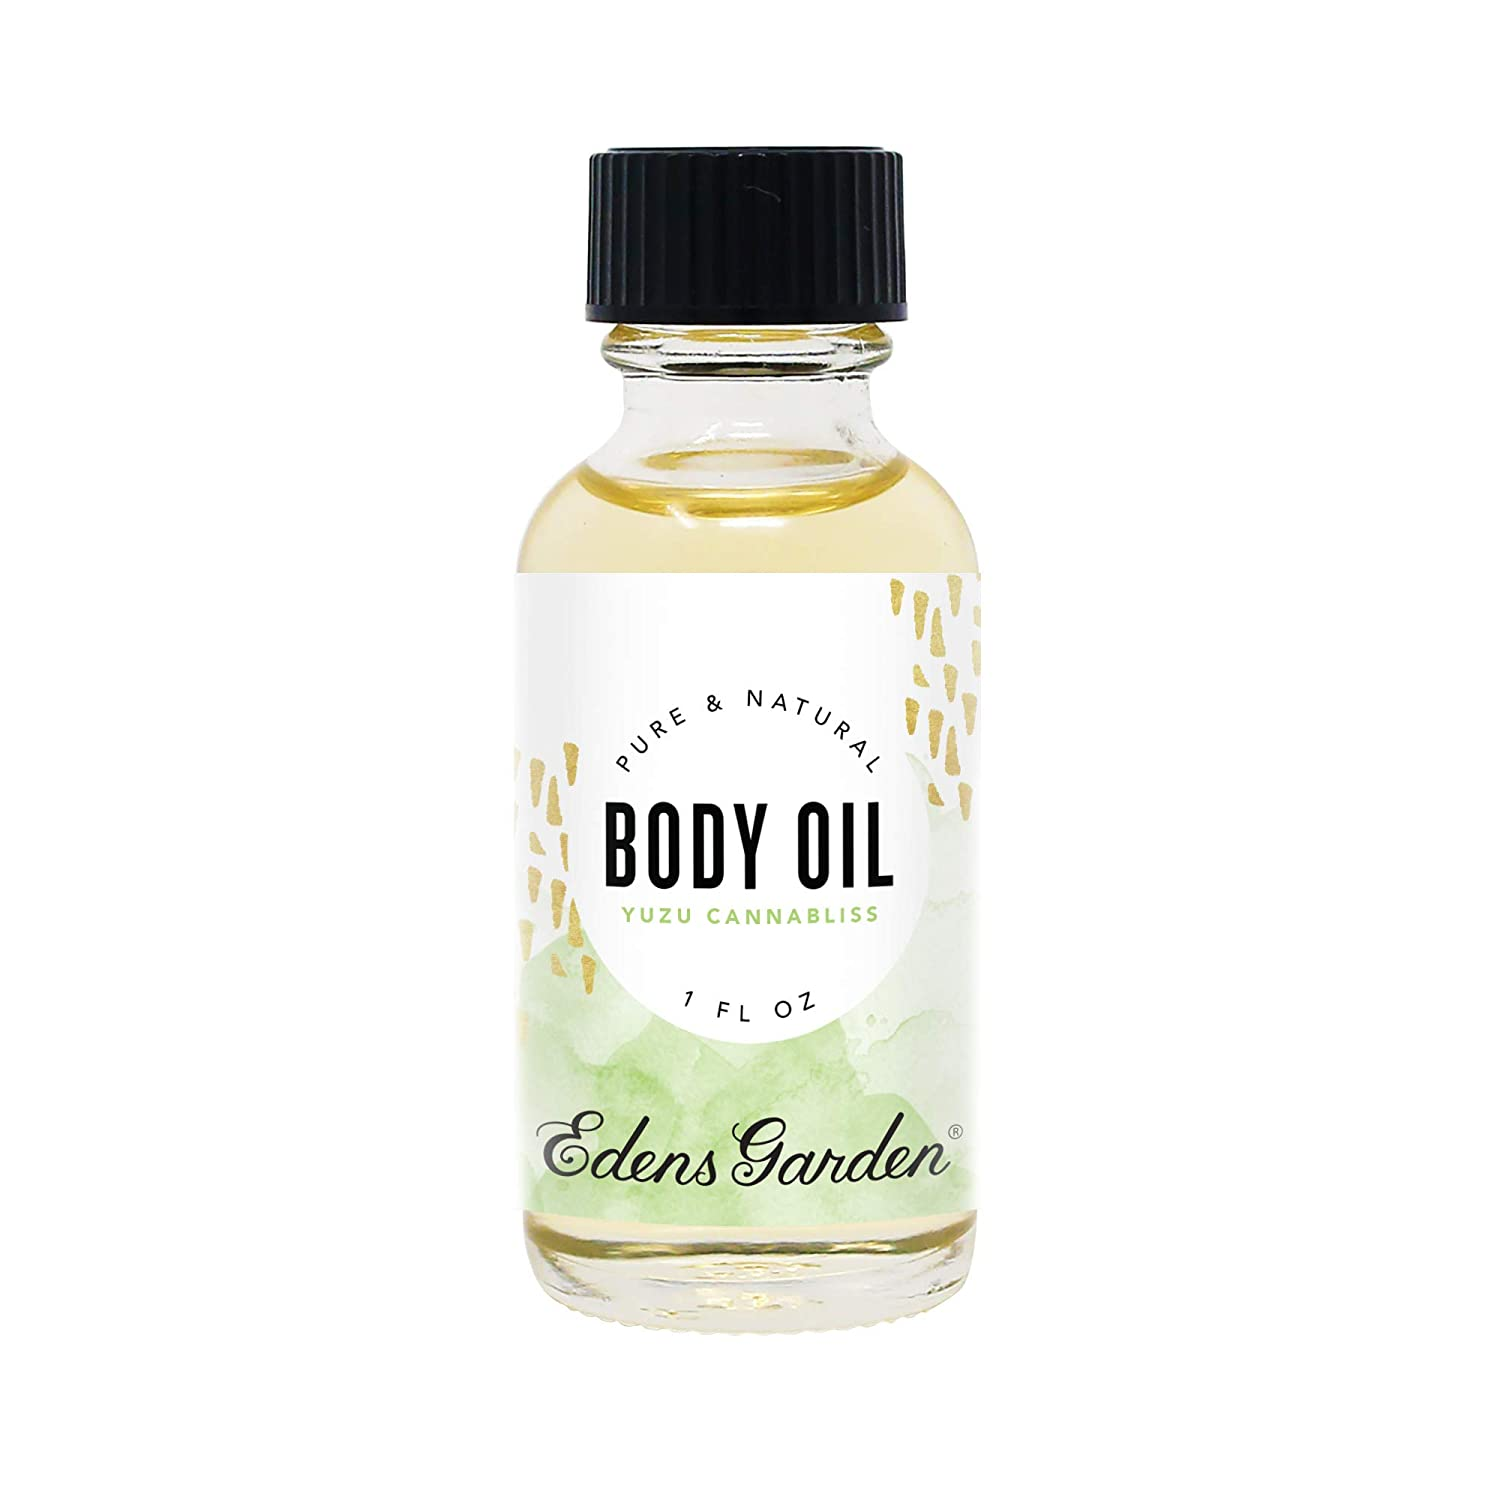 Edens Garden Yuzu Cannabliss Aromatherapy Body Oil (Made With Pure Essential Oils & Vitamin E- Inflammation & Pain), 1 oz